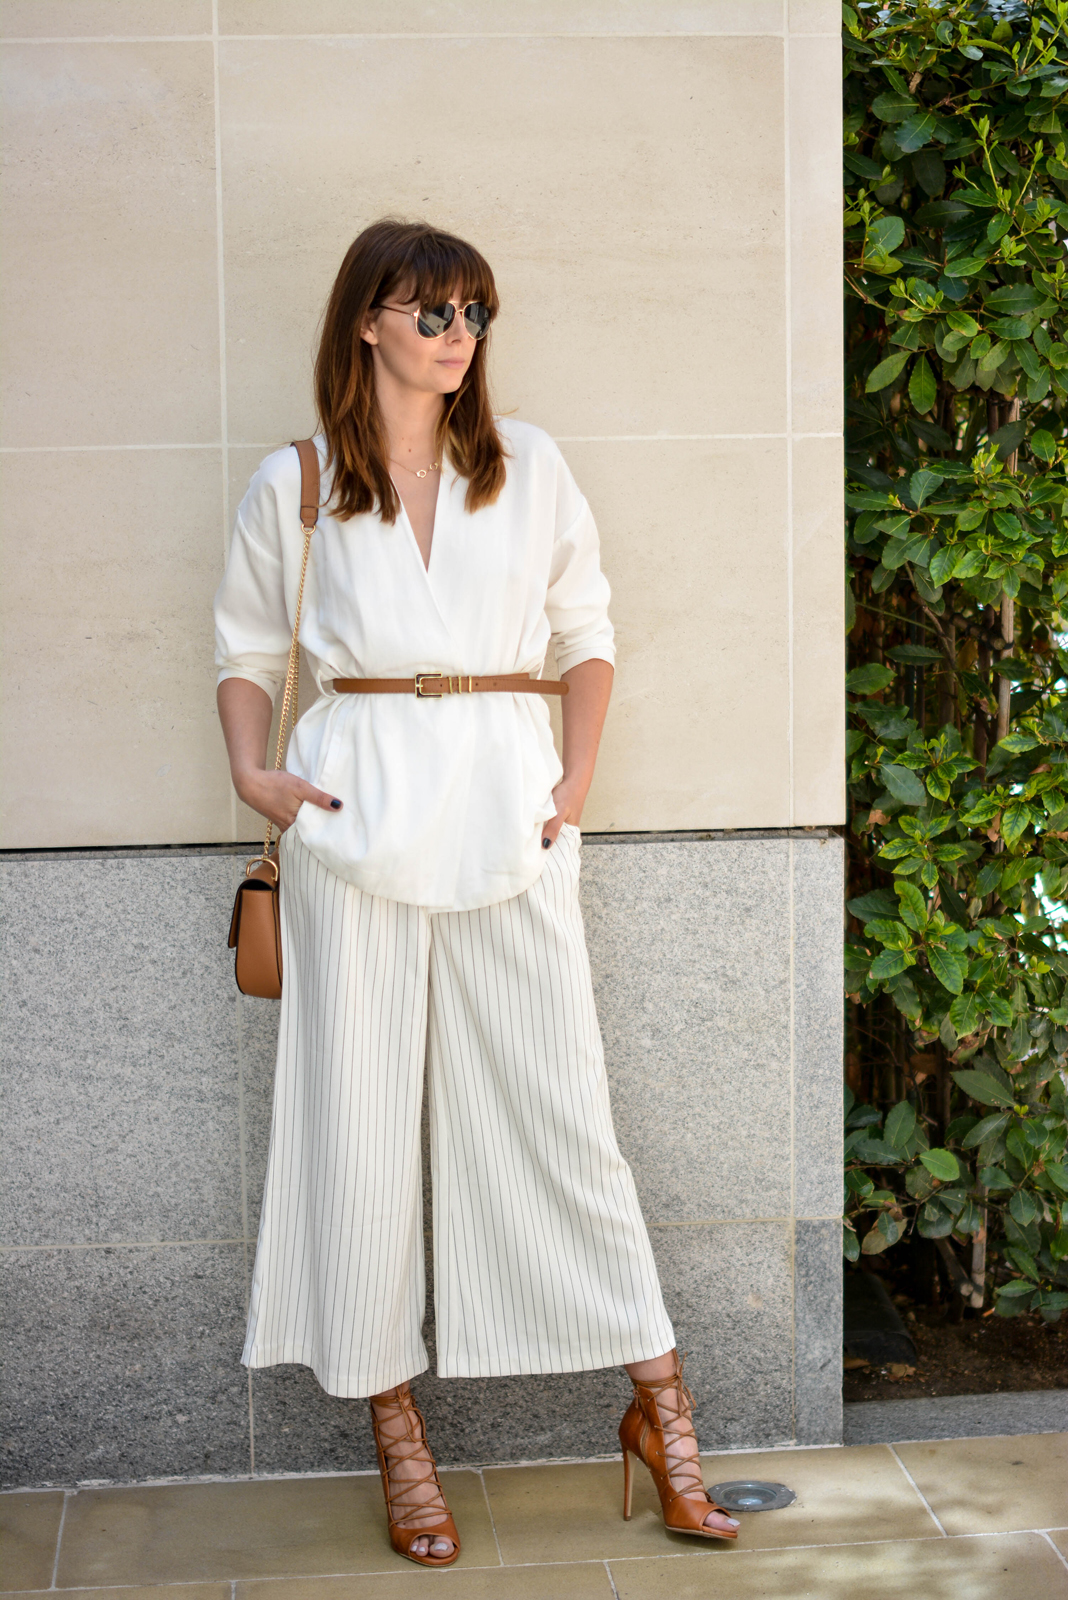 EJSTYLE - Emma Hill wearing Gestuz white wrap jacket, tan skinny waist belt, Finders Keepers white pinstripe wide leg culottes, Tan Chloe 'drew' dupe bag, tan lace up heels, summer whites outfit, ootd